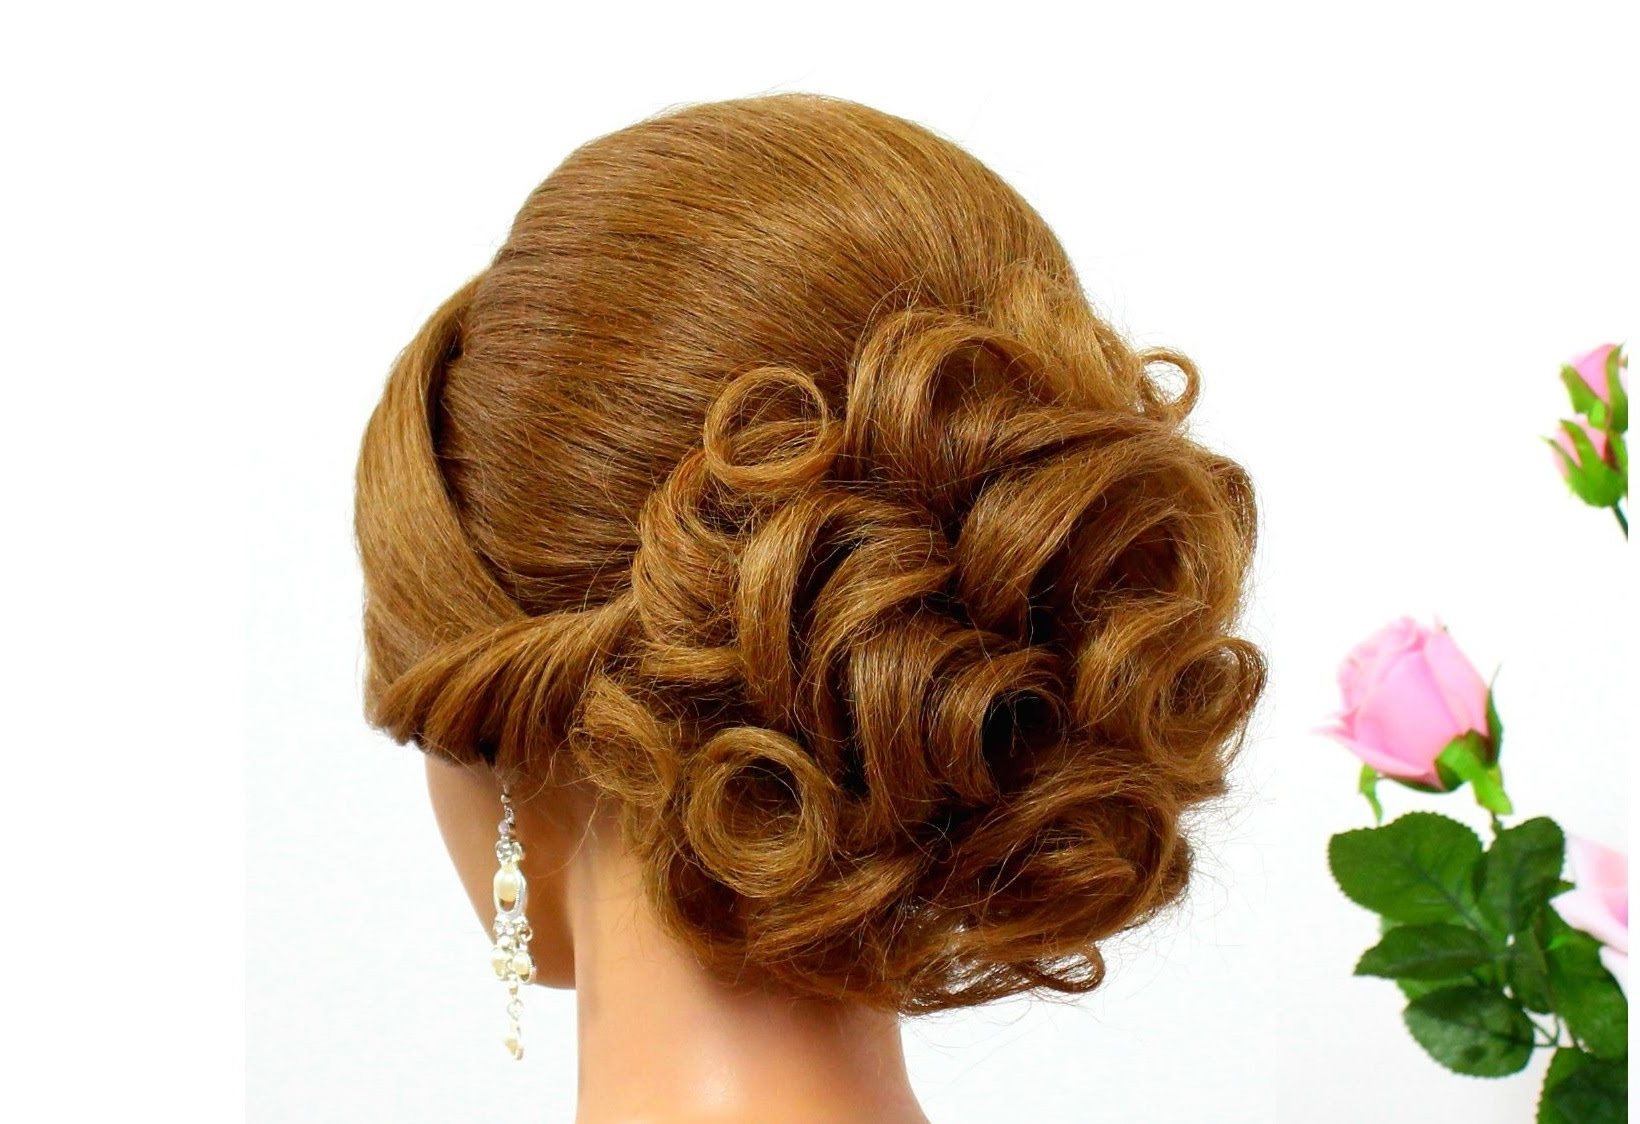 Bridal Hairstyle For Long Hair Tutorial (View 12 of 15)